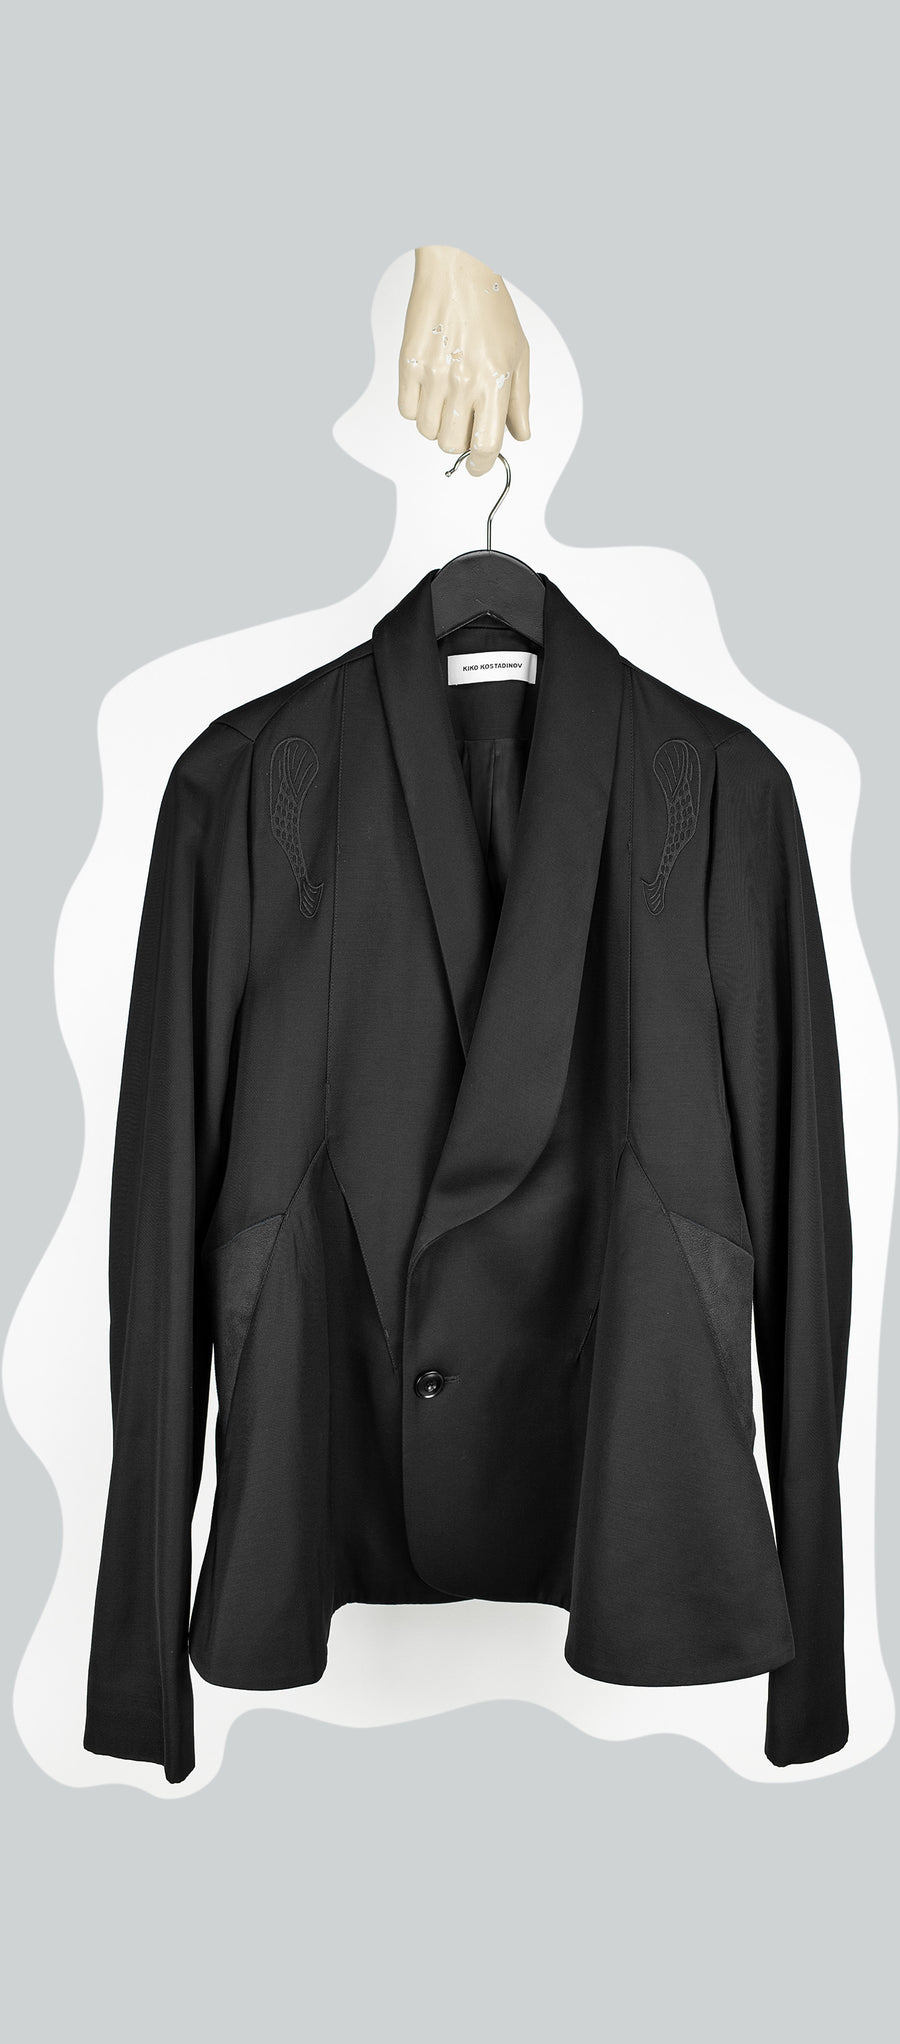 00092020 TRIPLE DART TAILORED JACKET